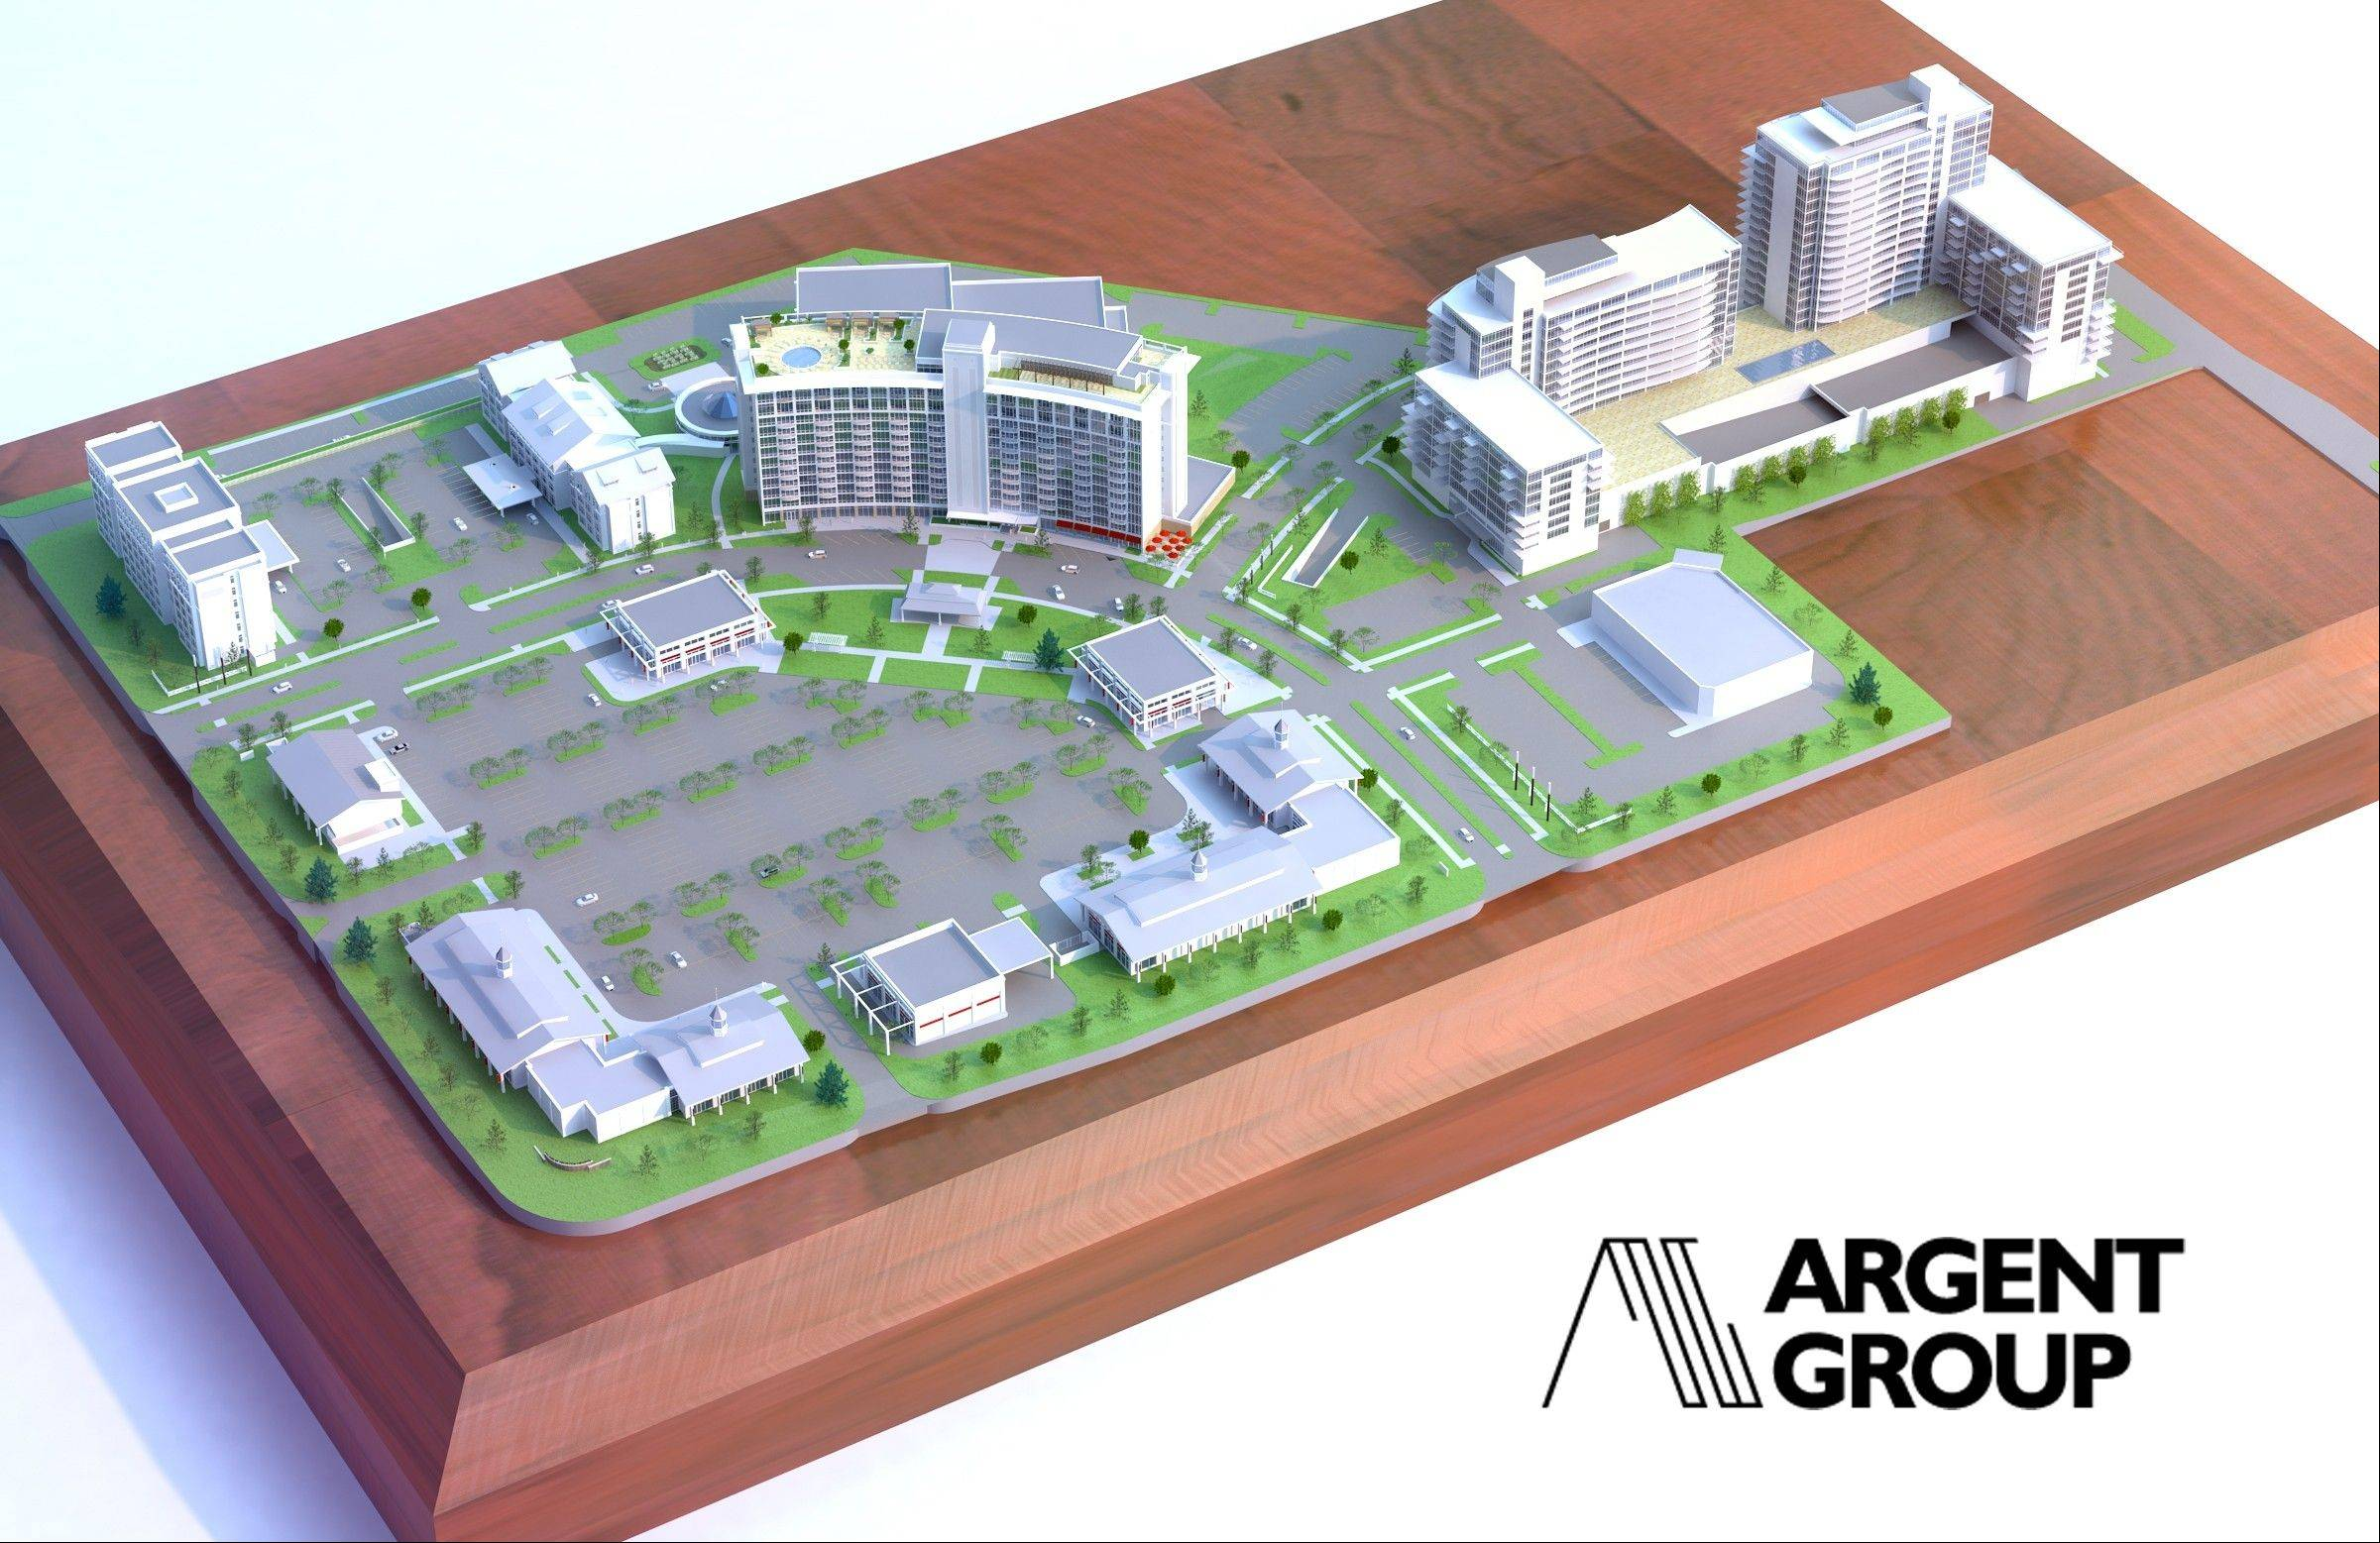 The site plan for Arlington Downs shows the old hotel with the water park nearby. Two hotels whose orientation will probably be changed are in the upper left-hand corner; retail is in the lower left-hand corner; and two new buildings with luxury apartments are off to the right.